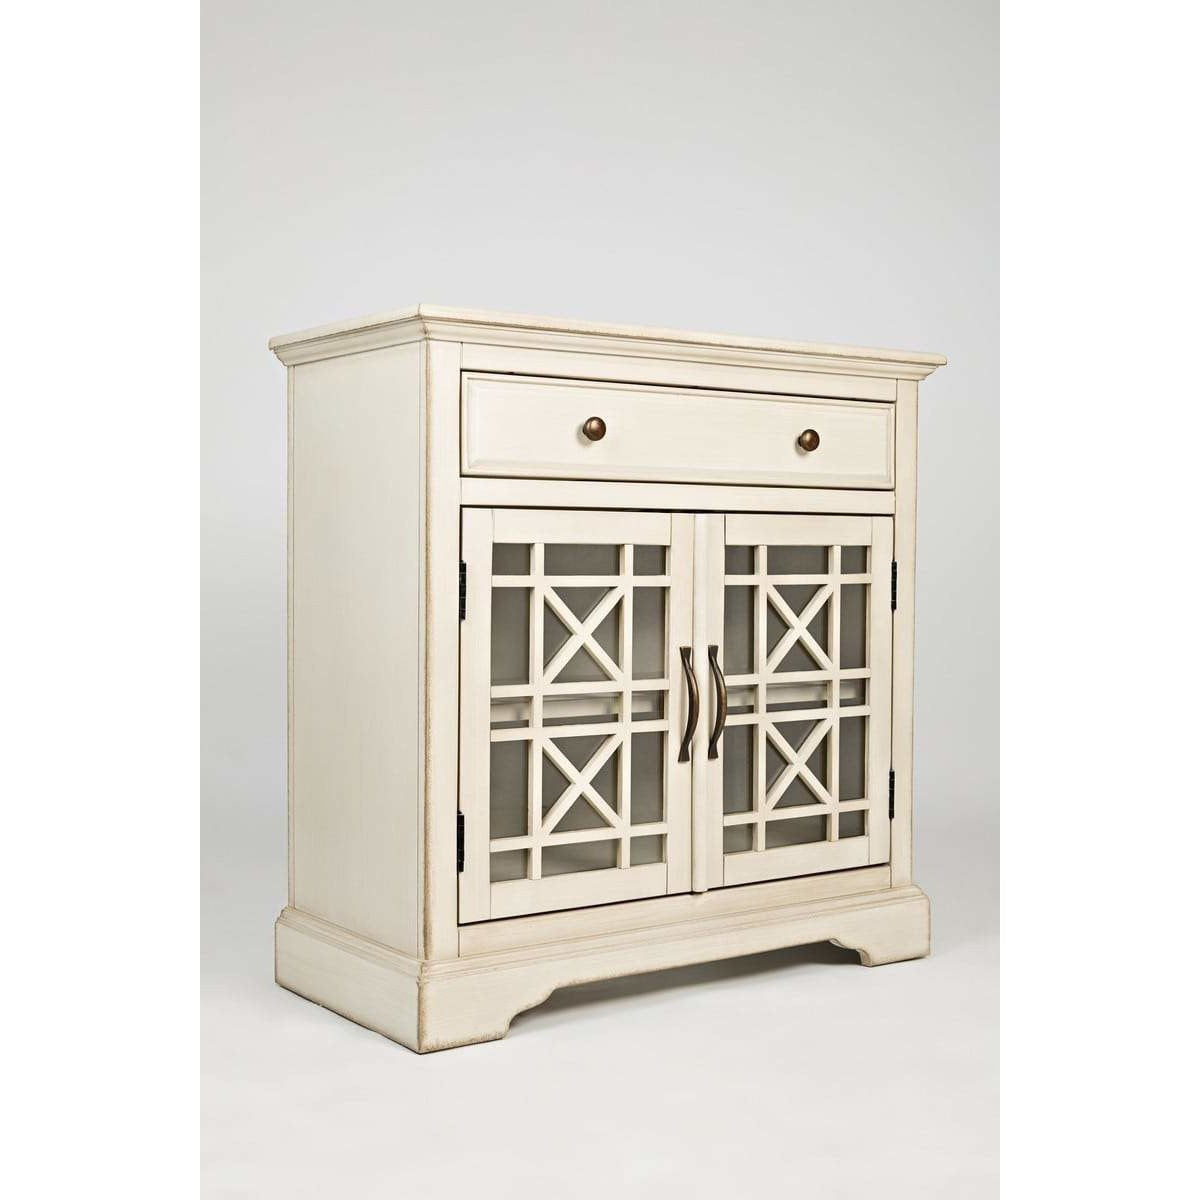 Cabinet And Storage Chests - Craftman Series 32 Inch Wooden Accent Cabinet With Fretwork Glass Front, Cream